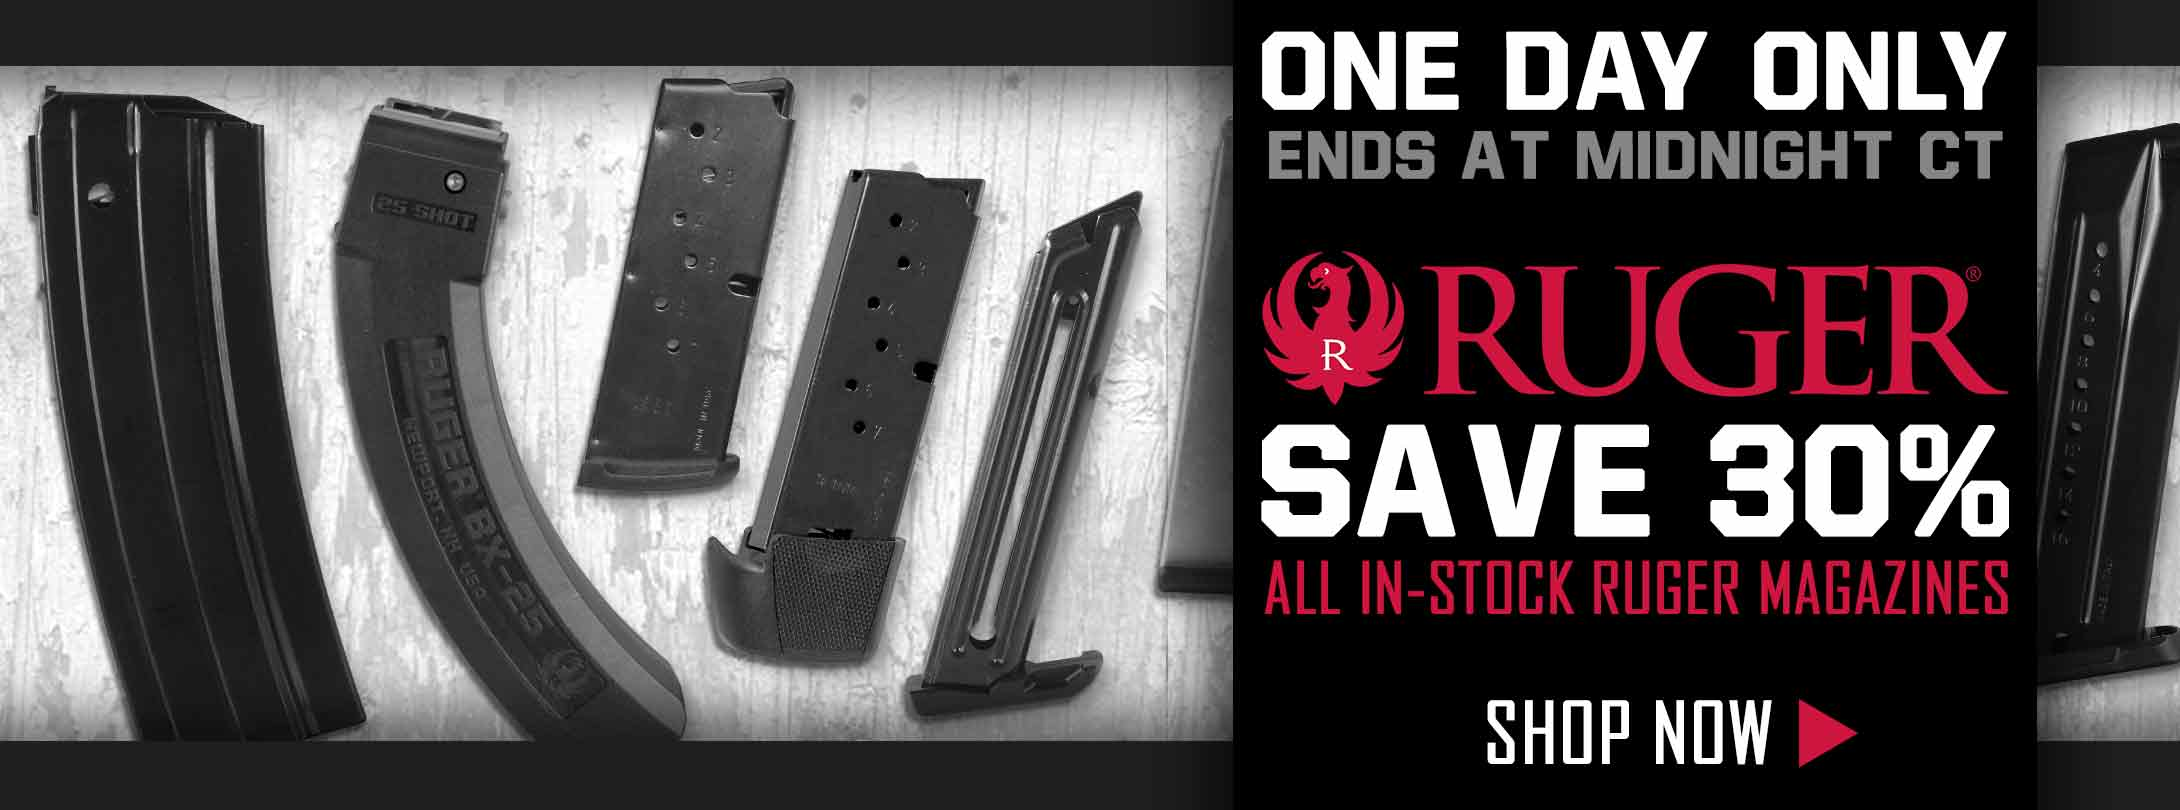 30% Off All In-Stock Ruger Mags